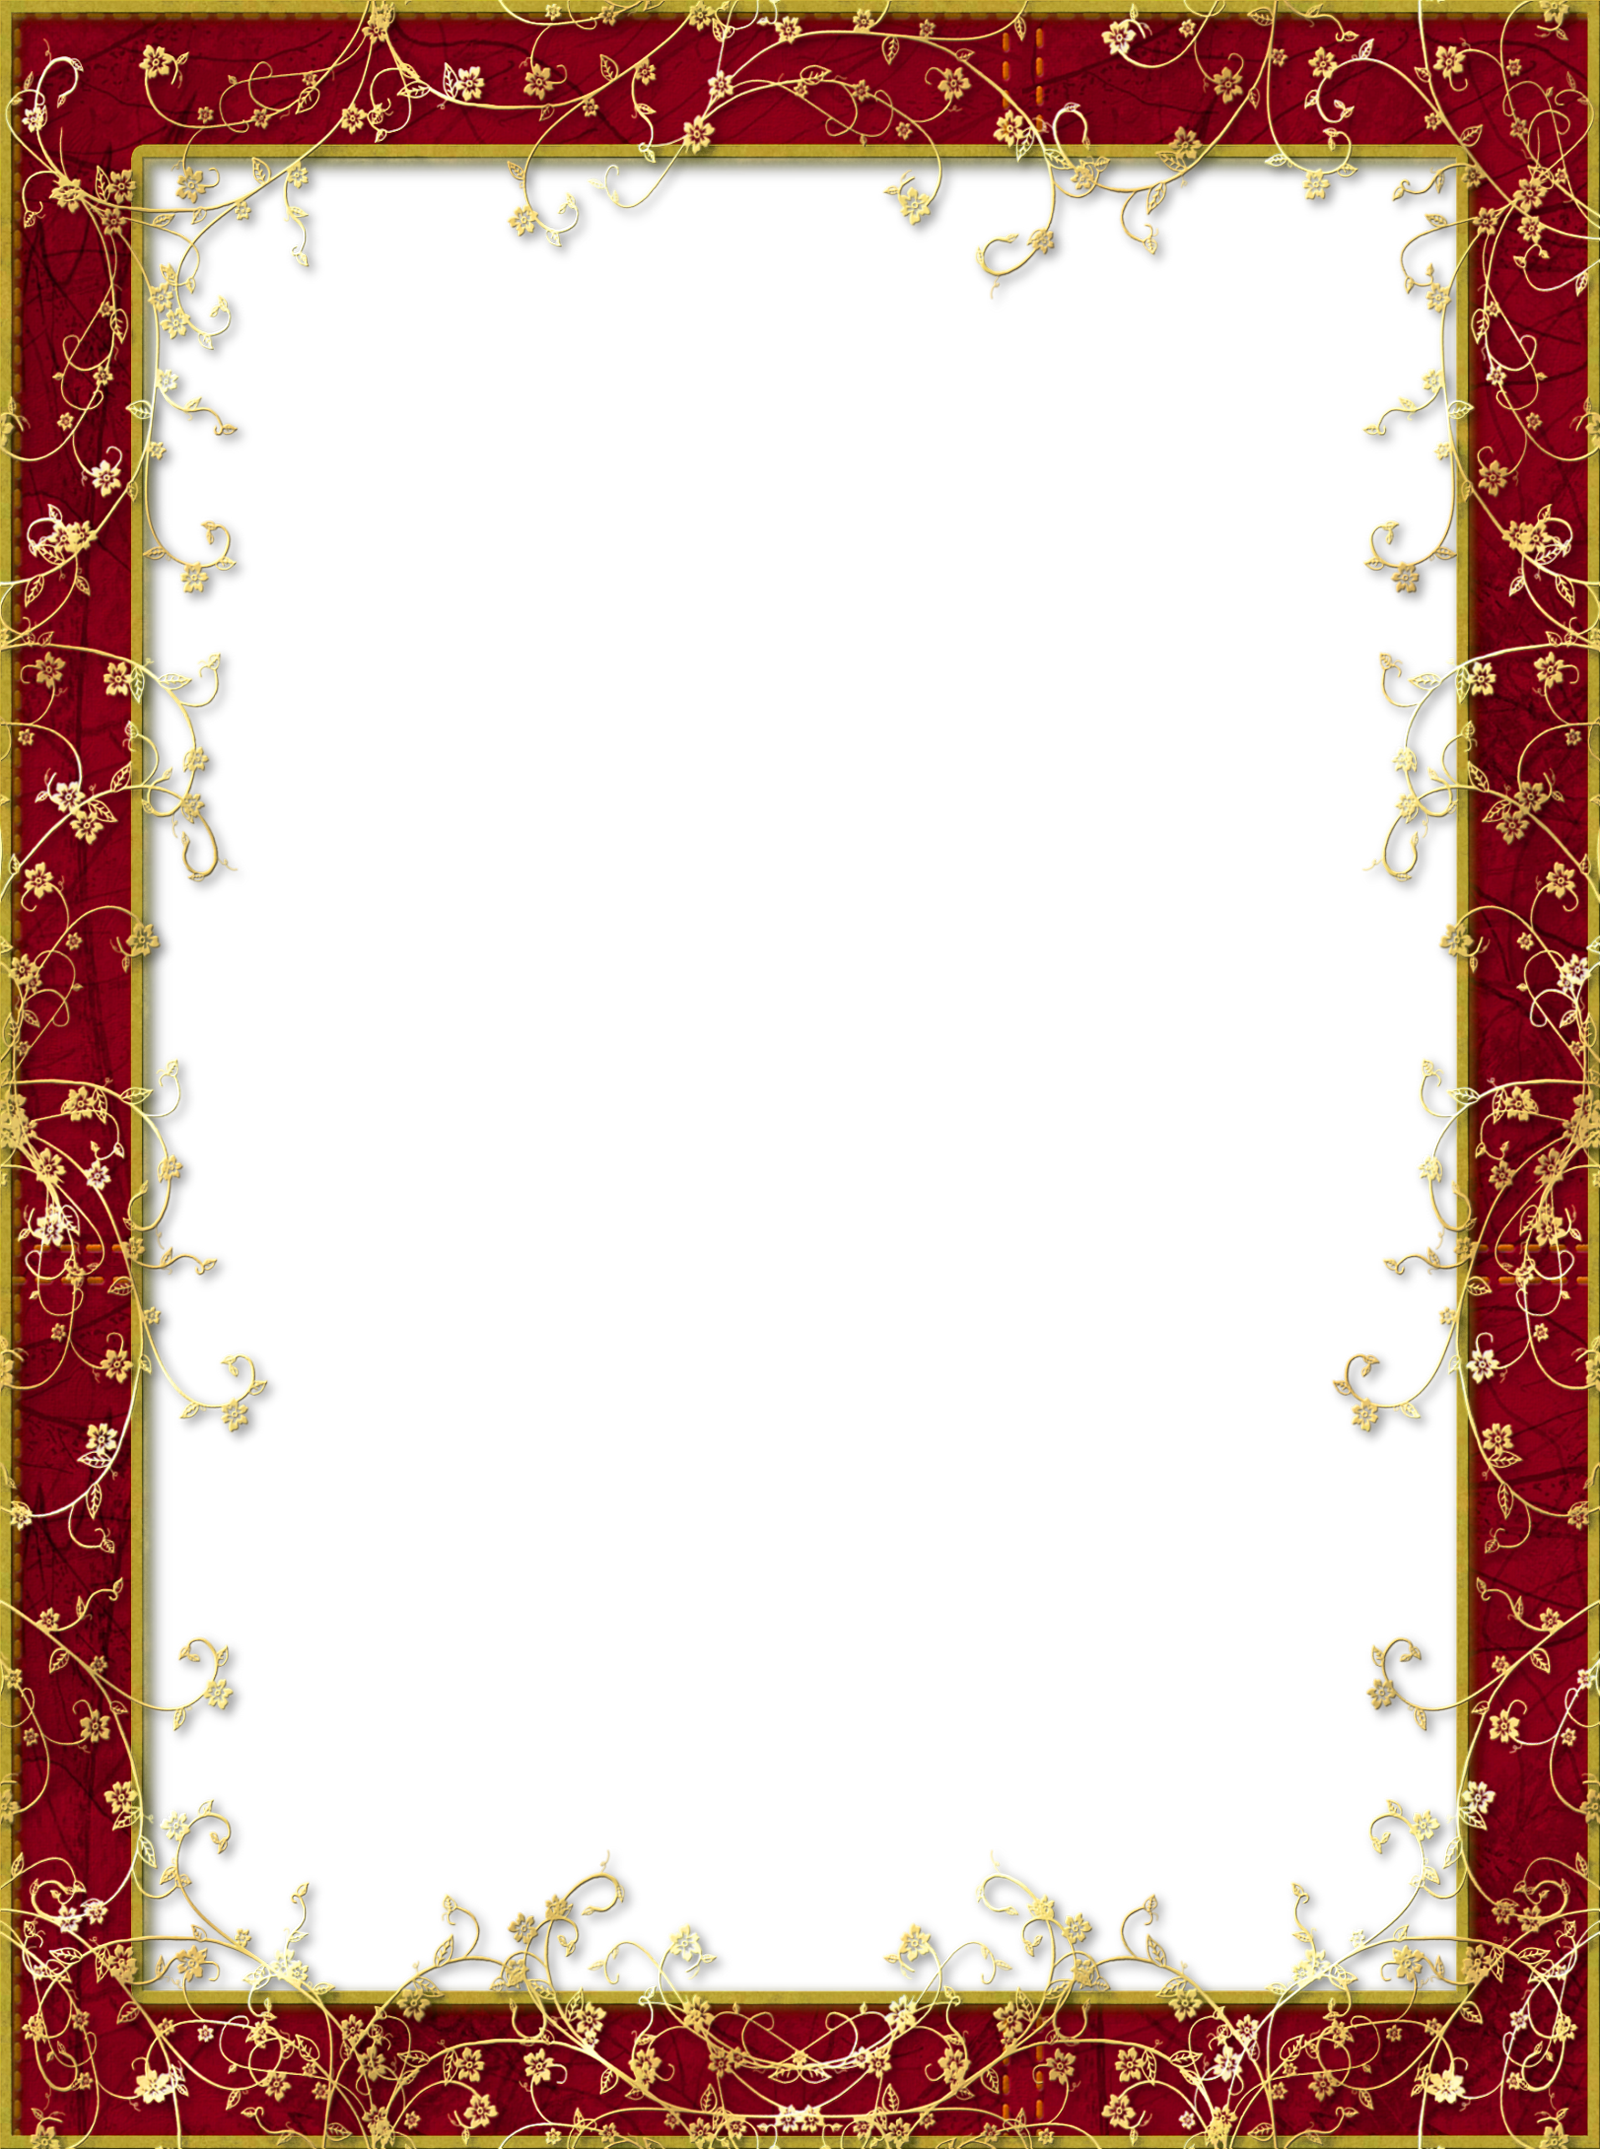 Red Transparent PNG Frame with Gold Flowers.